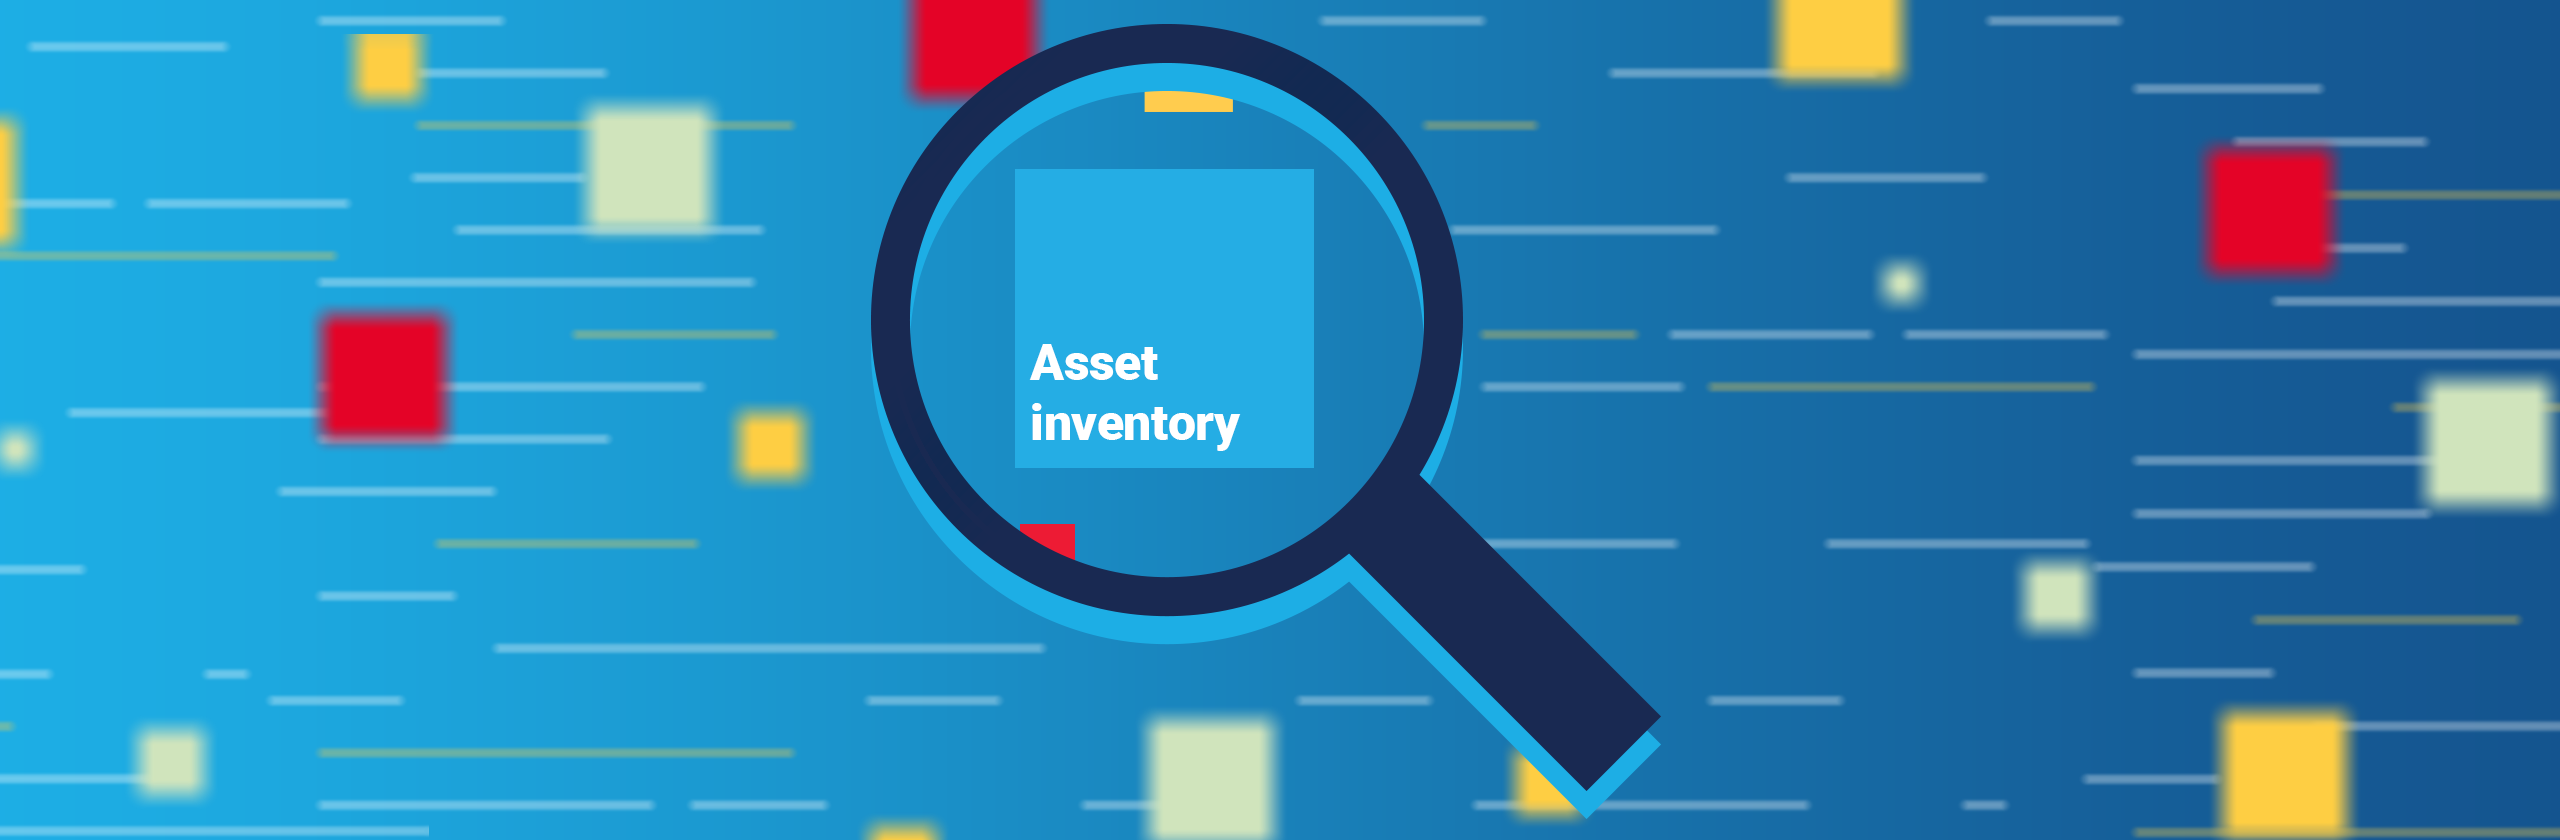 Metric of the Month Asset inventory banner